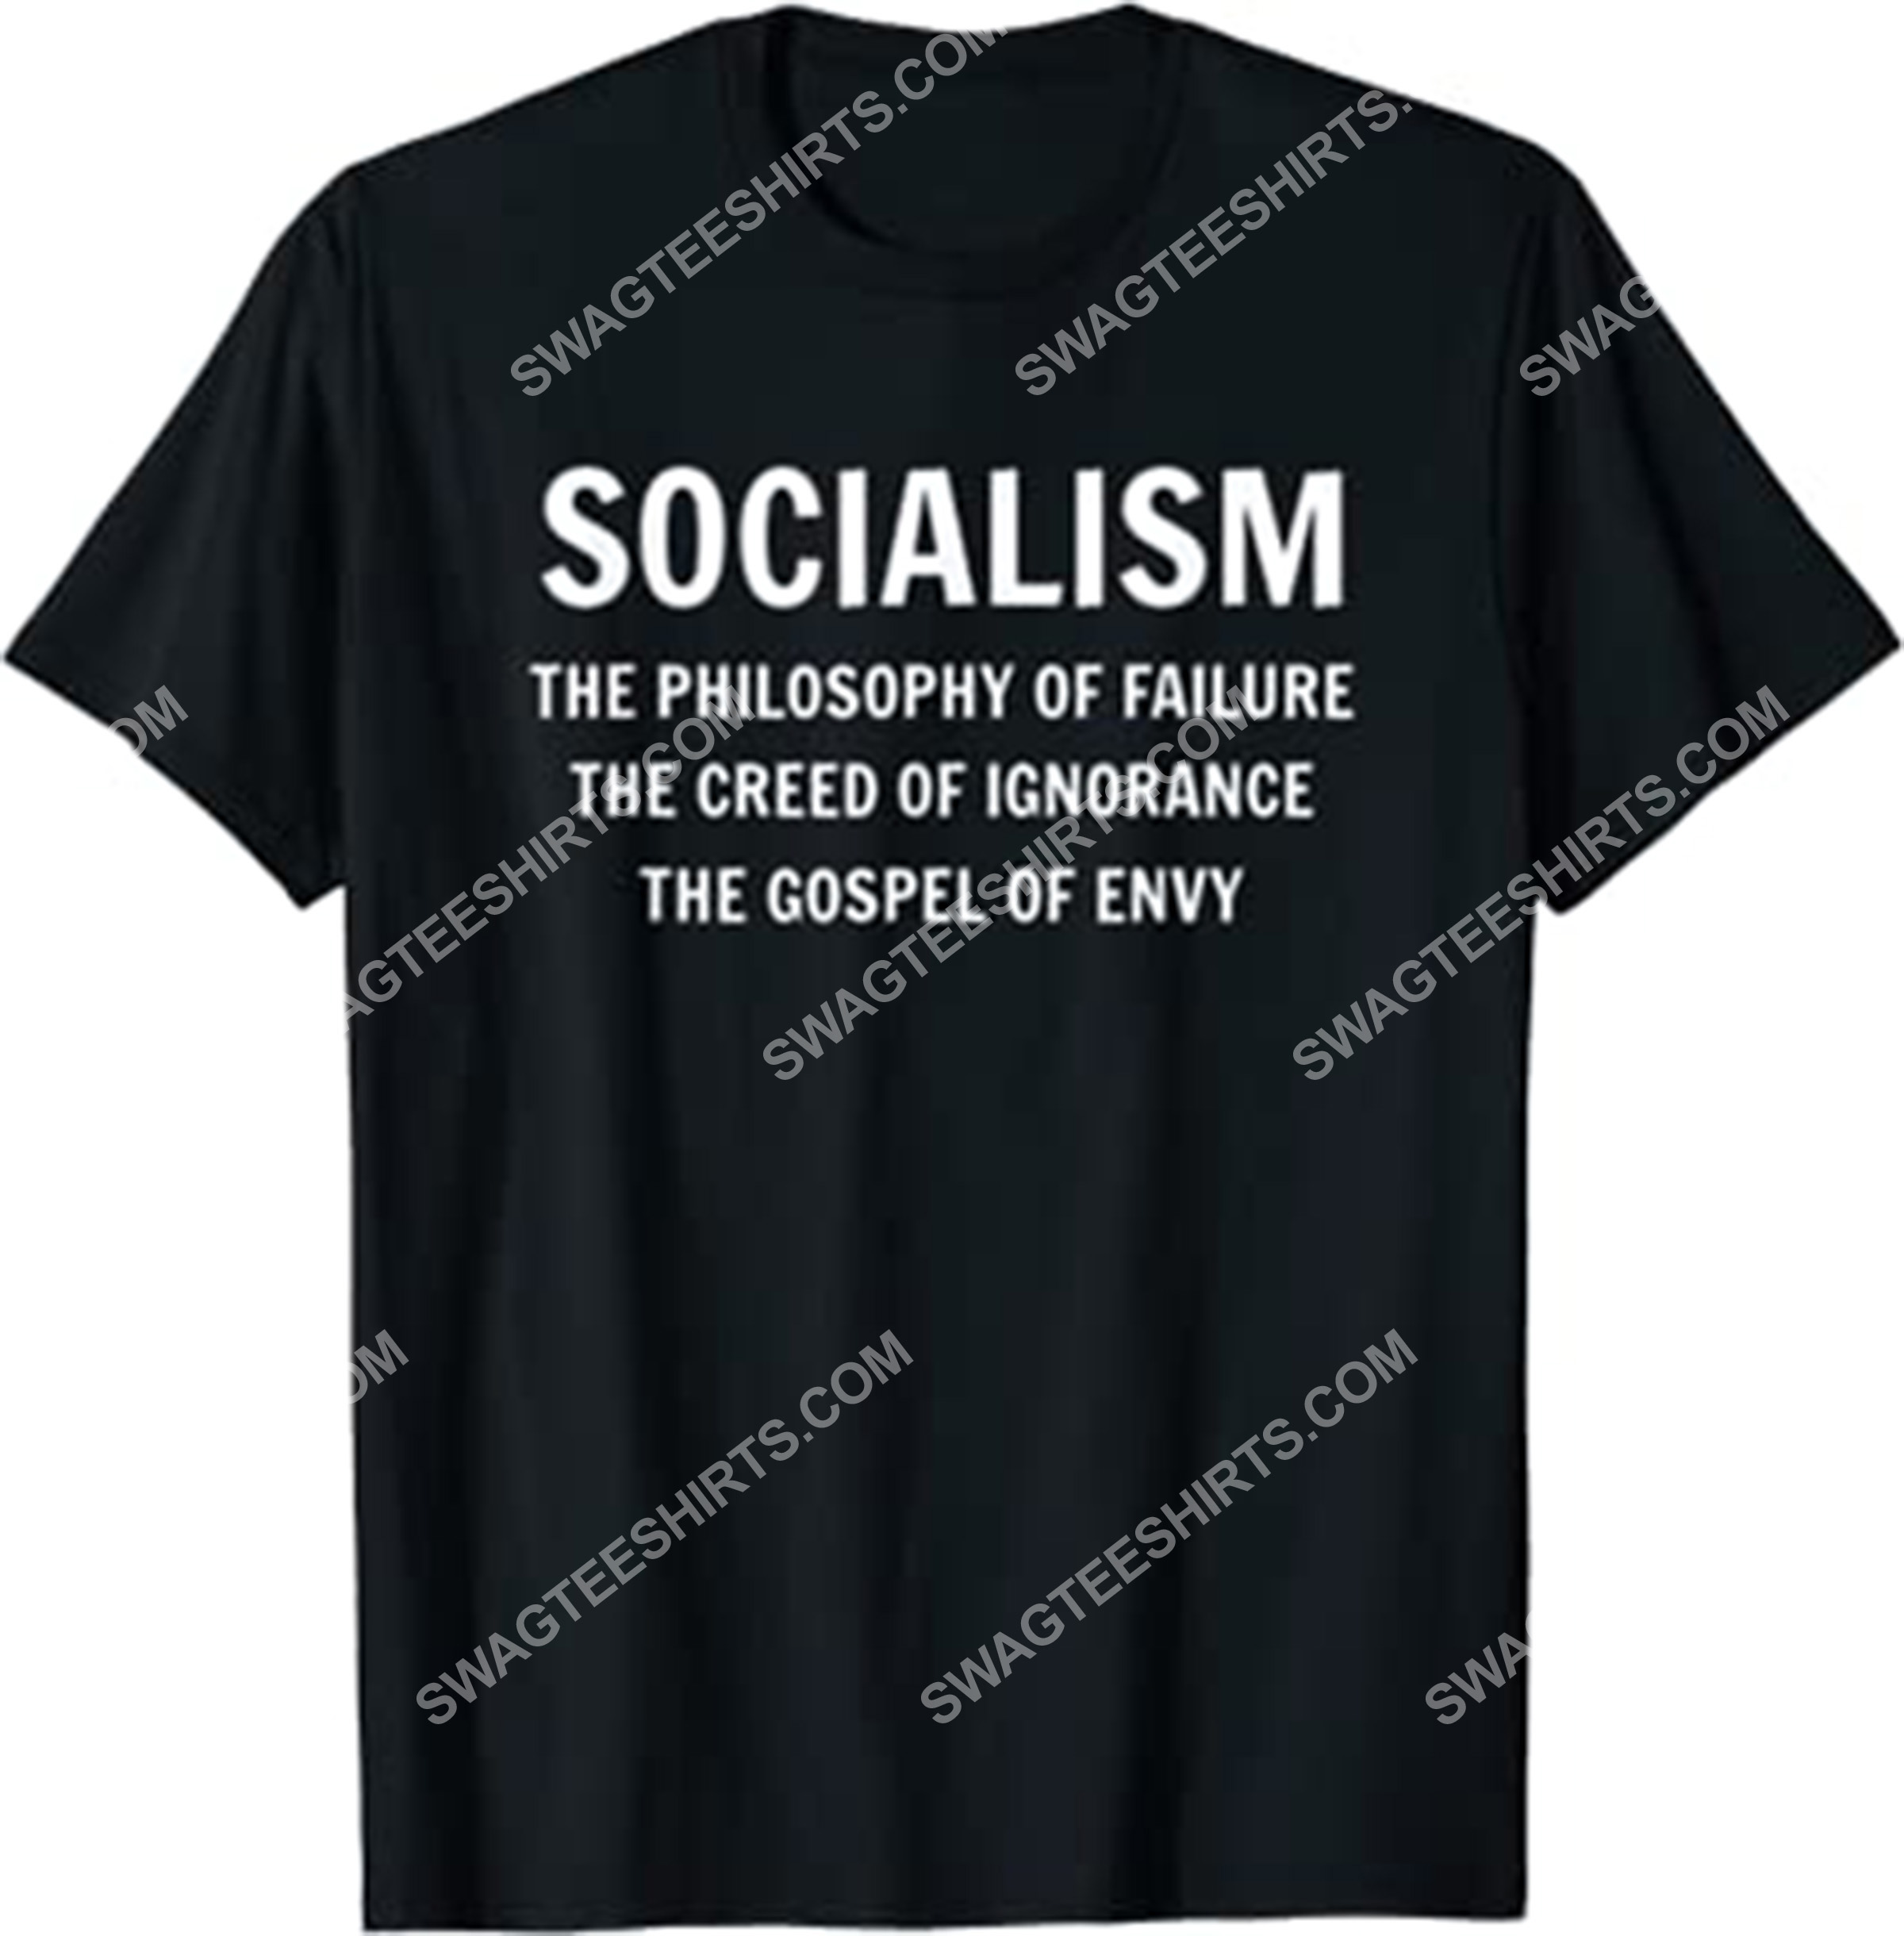 socialism the philosophy of failure the creed of ignorance the gospel of envy shirt 1(1)